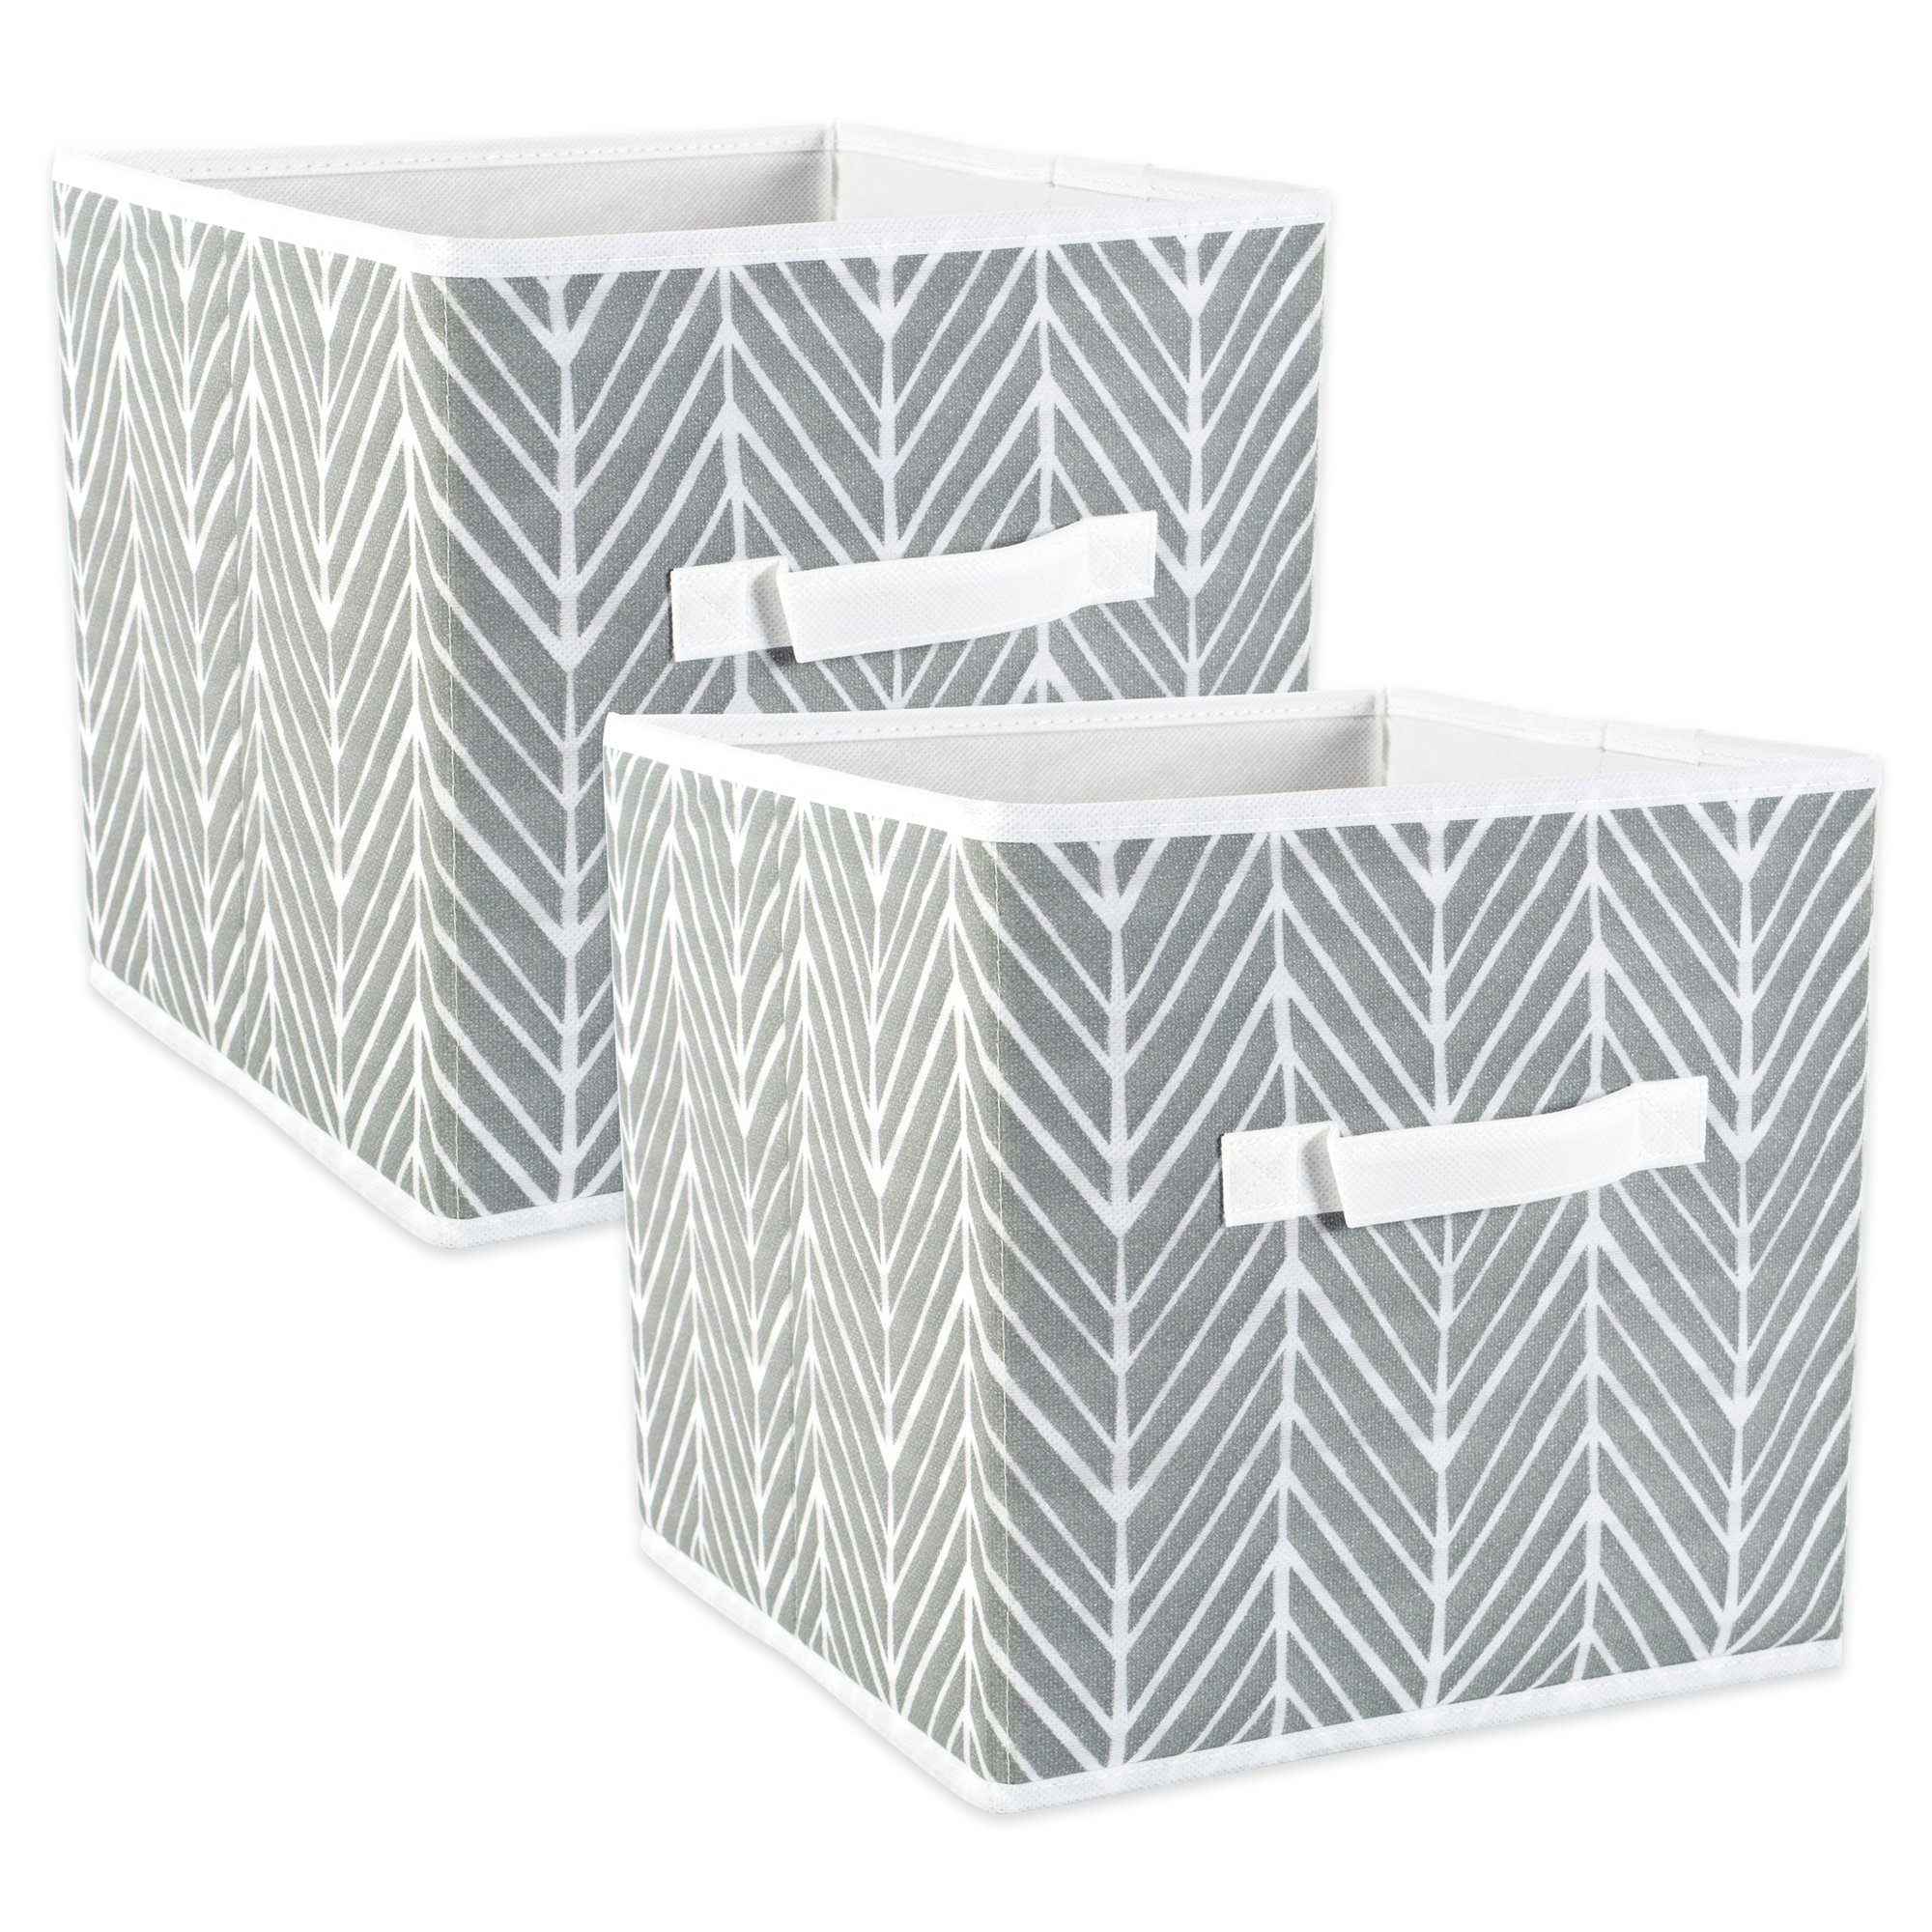 DII Fabric Storage Bins for Nursery, Offices, & Home Organization, Containers Are Made To Fit Standard Cube Organizers (11x11x11'') Herringbone Gray - Set of 2 by DII